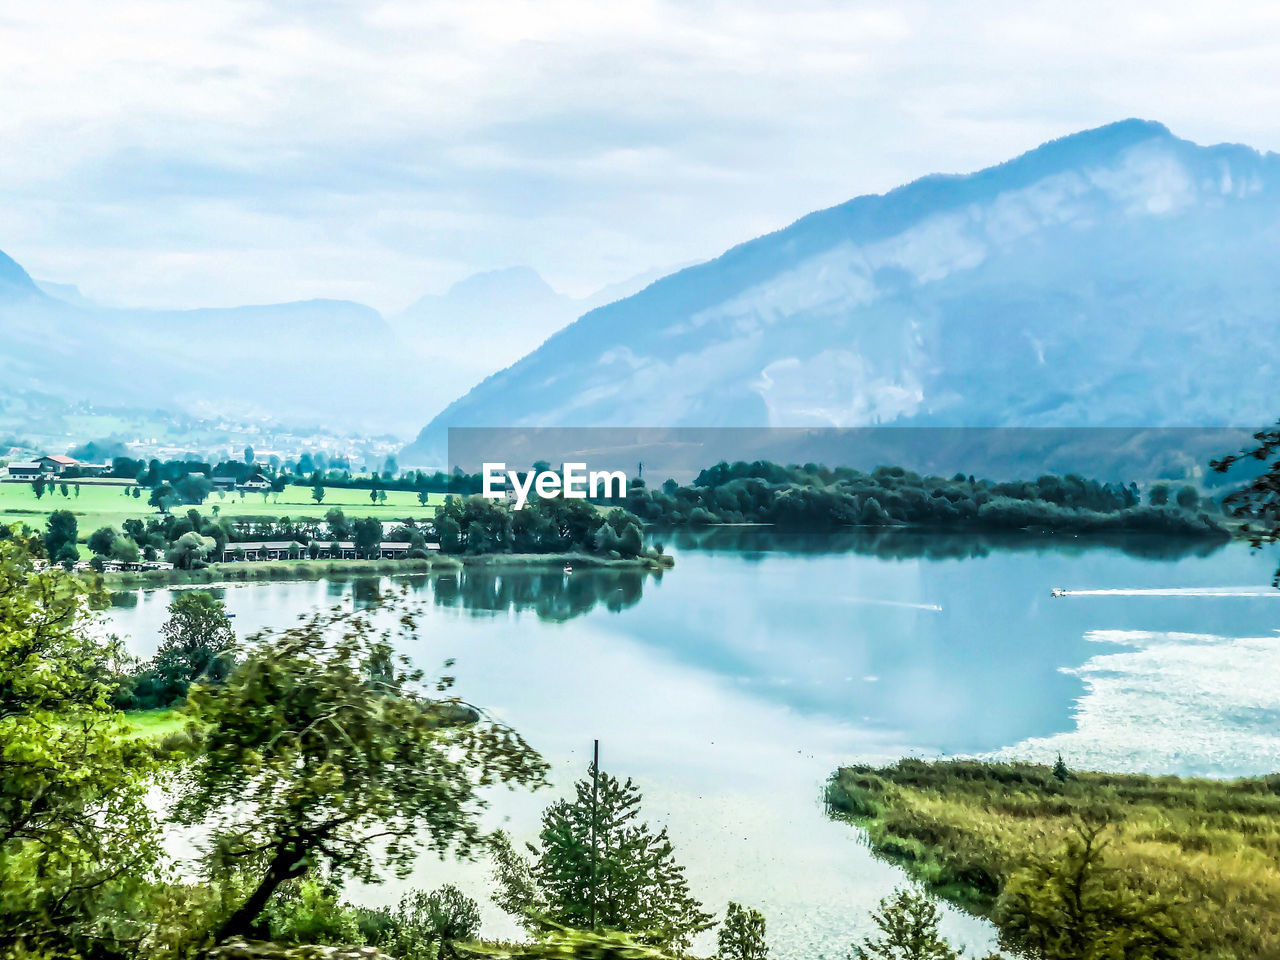 water, sky, beauty in nature, cloud - sky, scenics - nature, lake, tranquil scene, reflection, tree, tranquility, mountain, plant, nature, day, green color, no people, non-urban scene, idyllic, mountain range